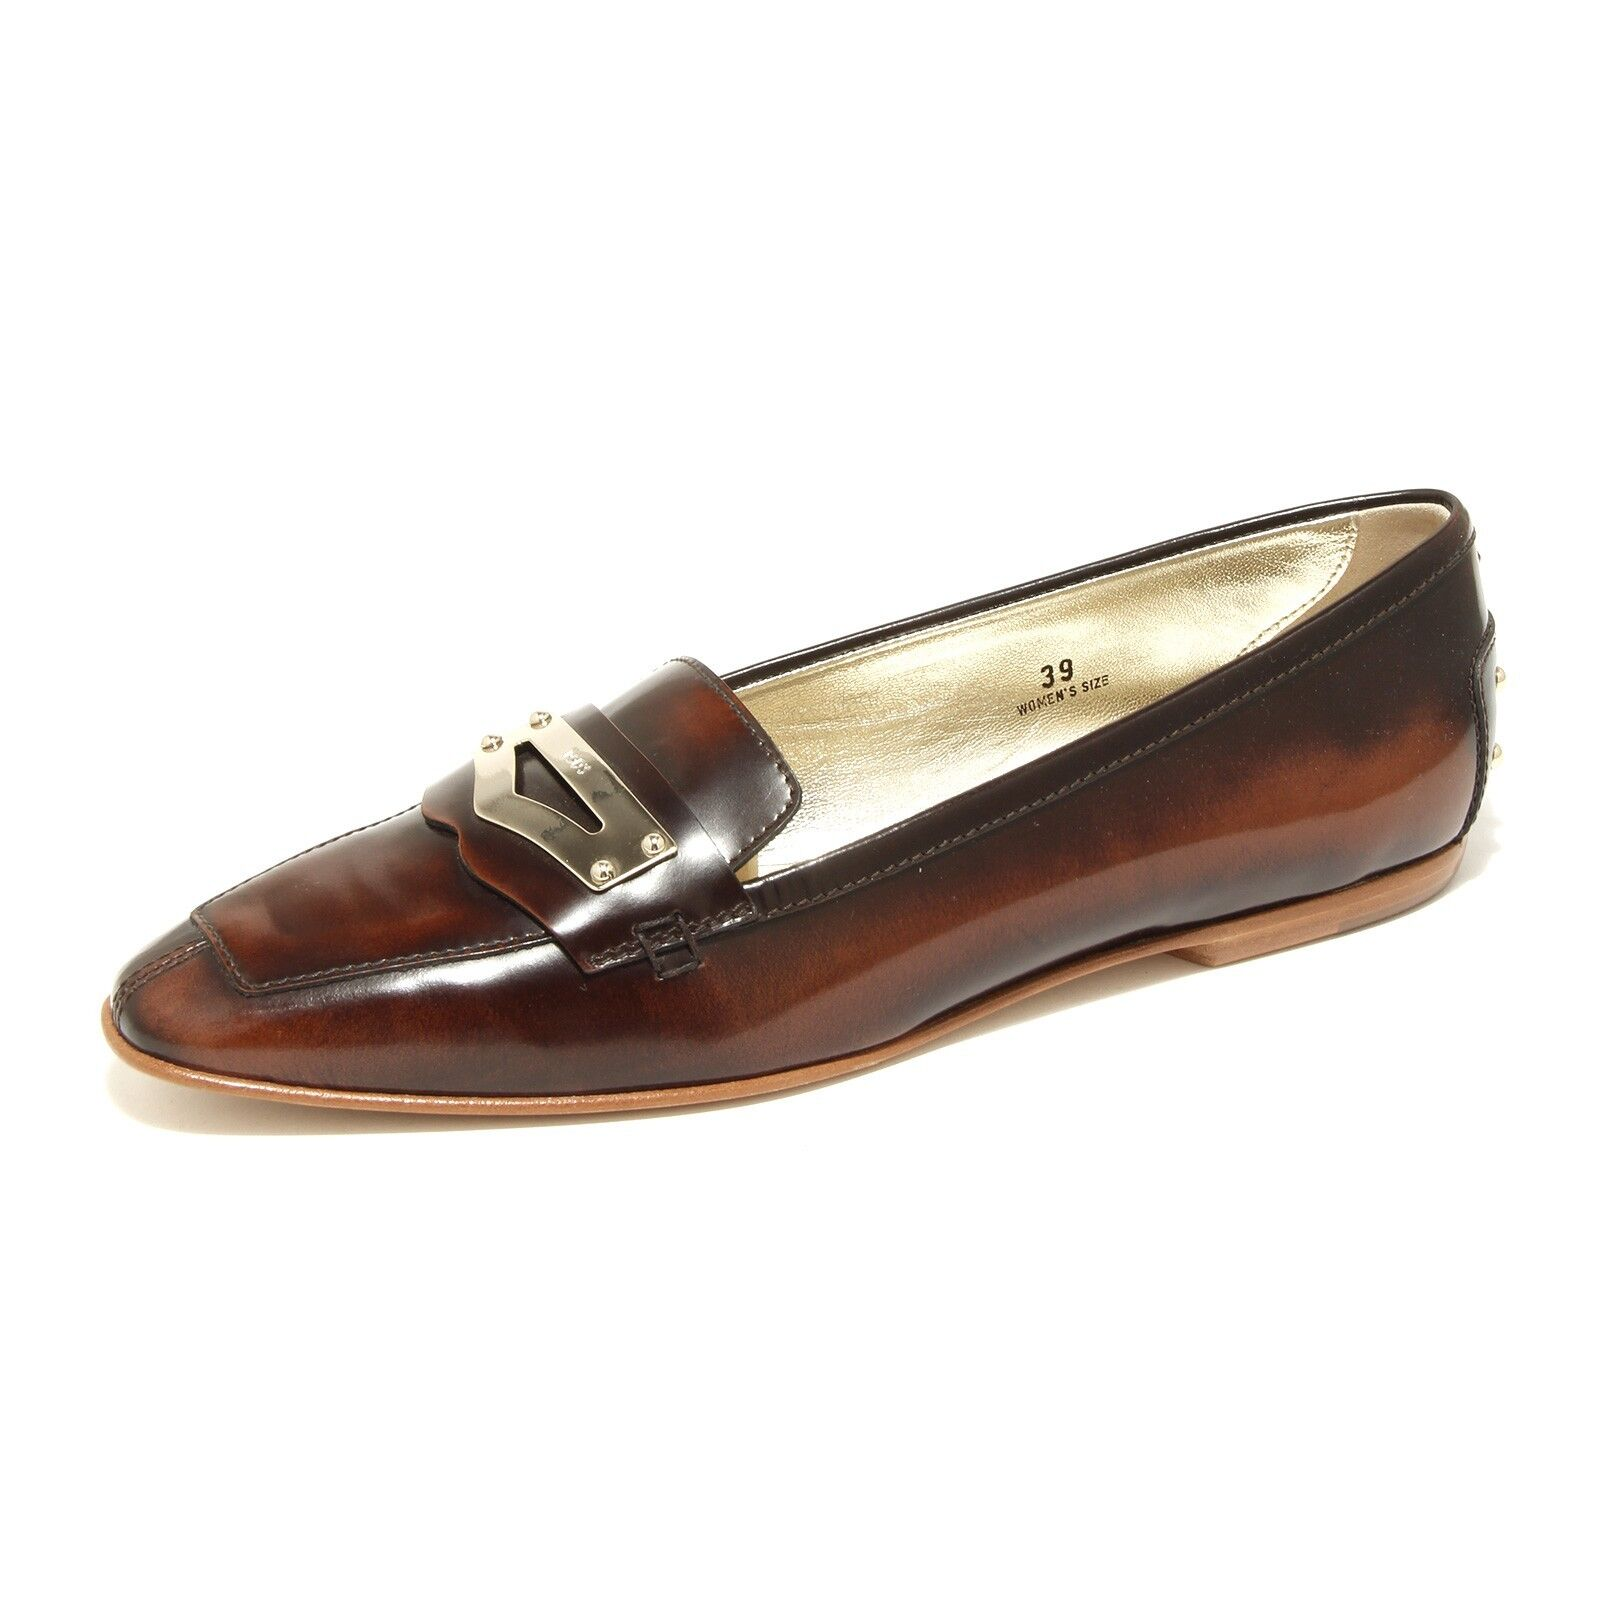 43109 ballerina mocassino TOD 'S scarpa donna loafer shoes Donna